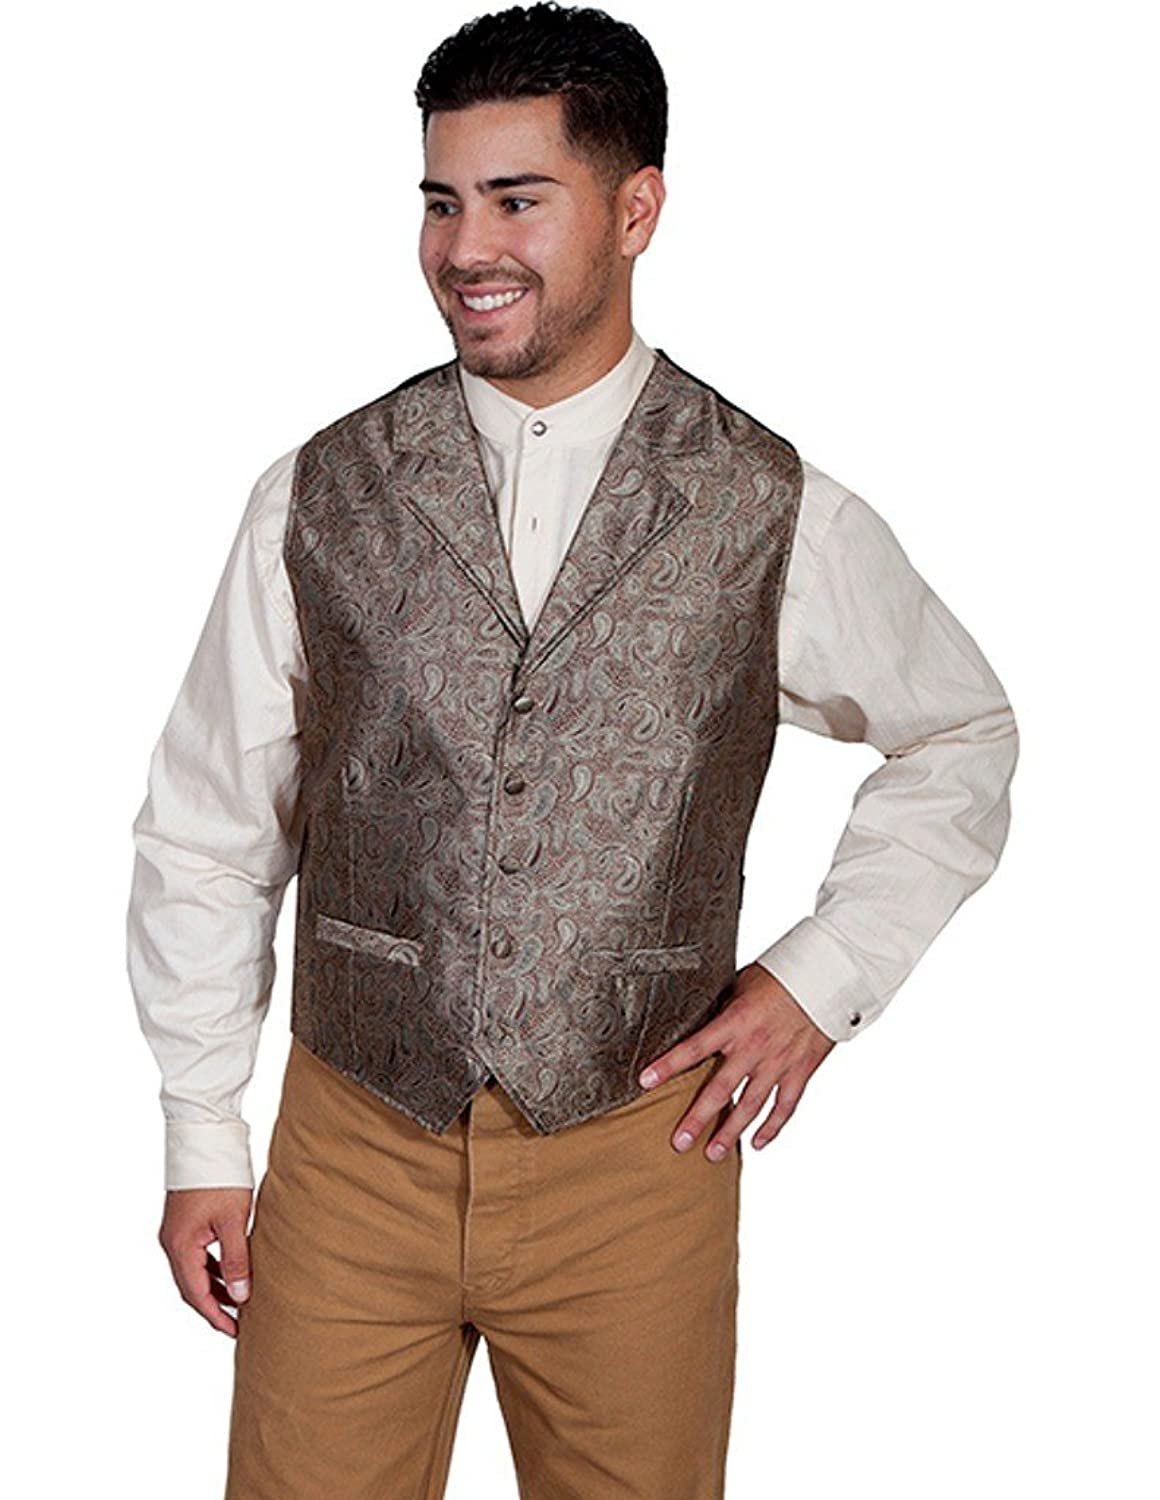 1900s Edwardian Men's Suits and Coats Scully Western Vest Mens Lined Sleeveless Paisley Button RW238 $50.90 AT vintagedancer.com